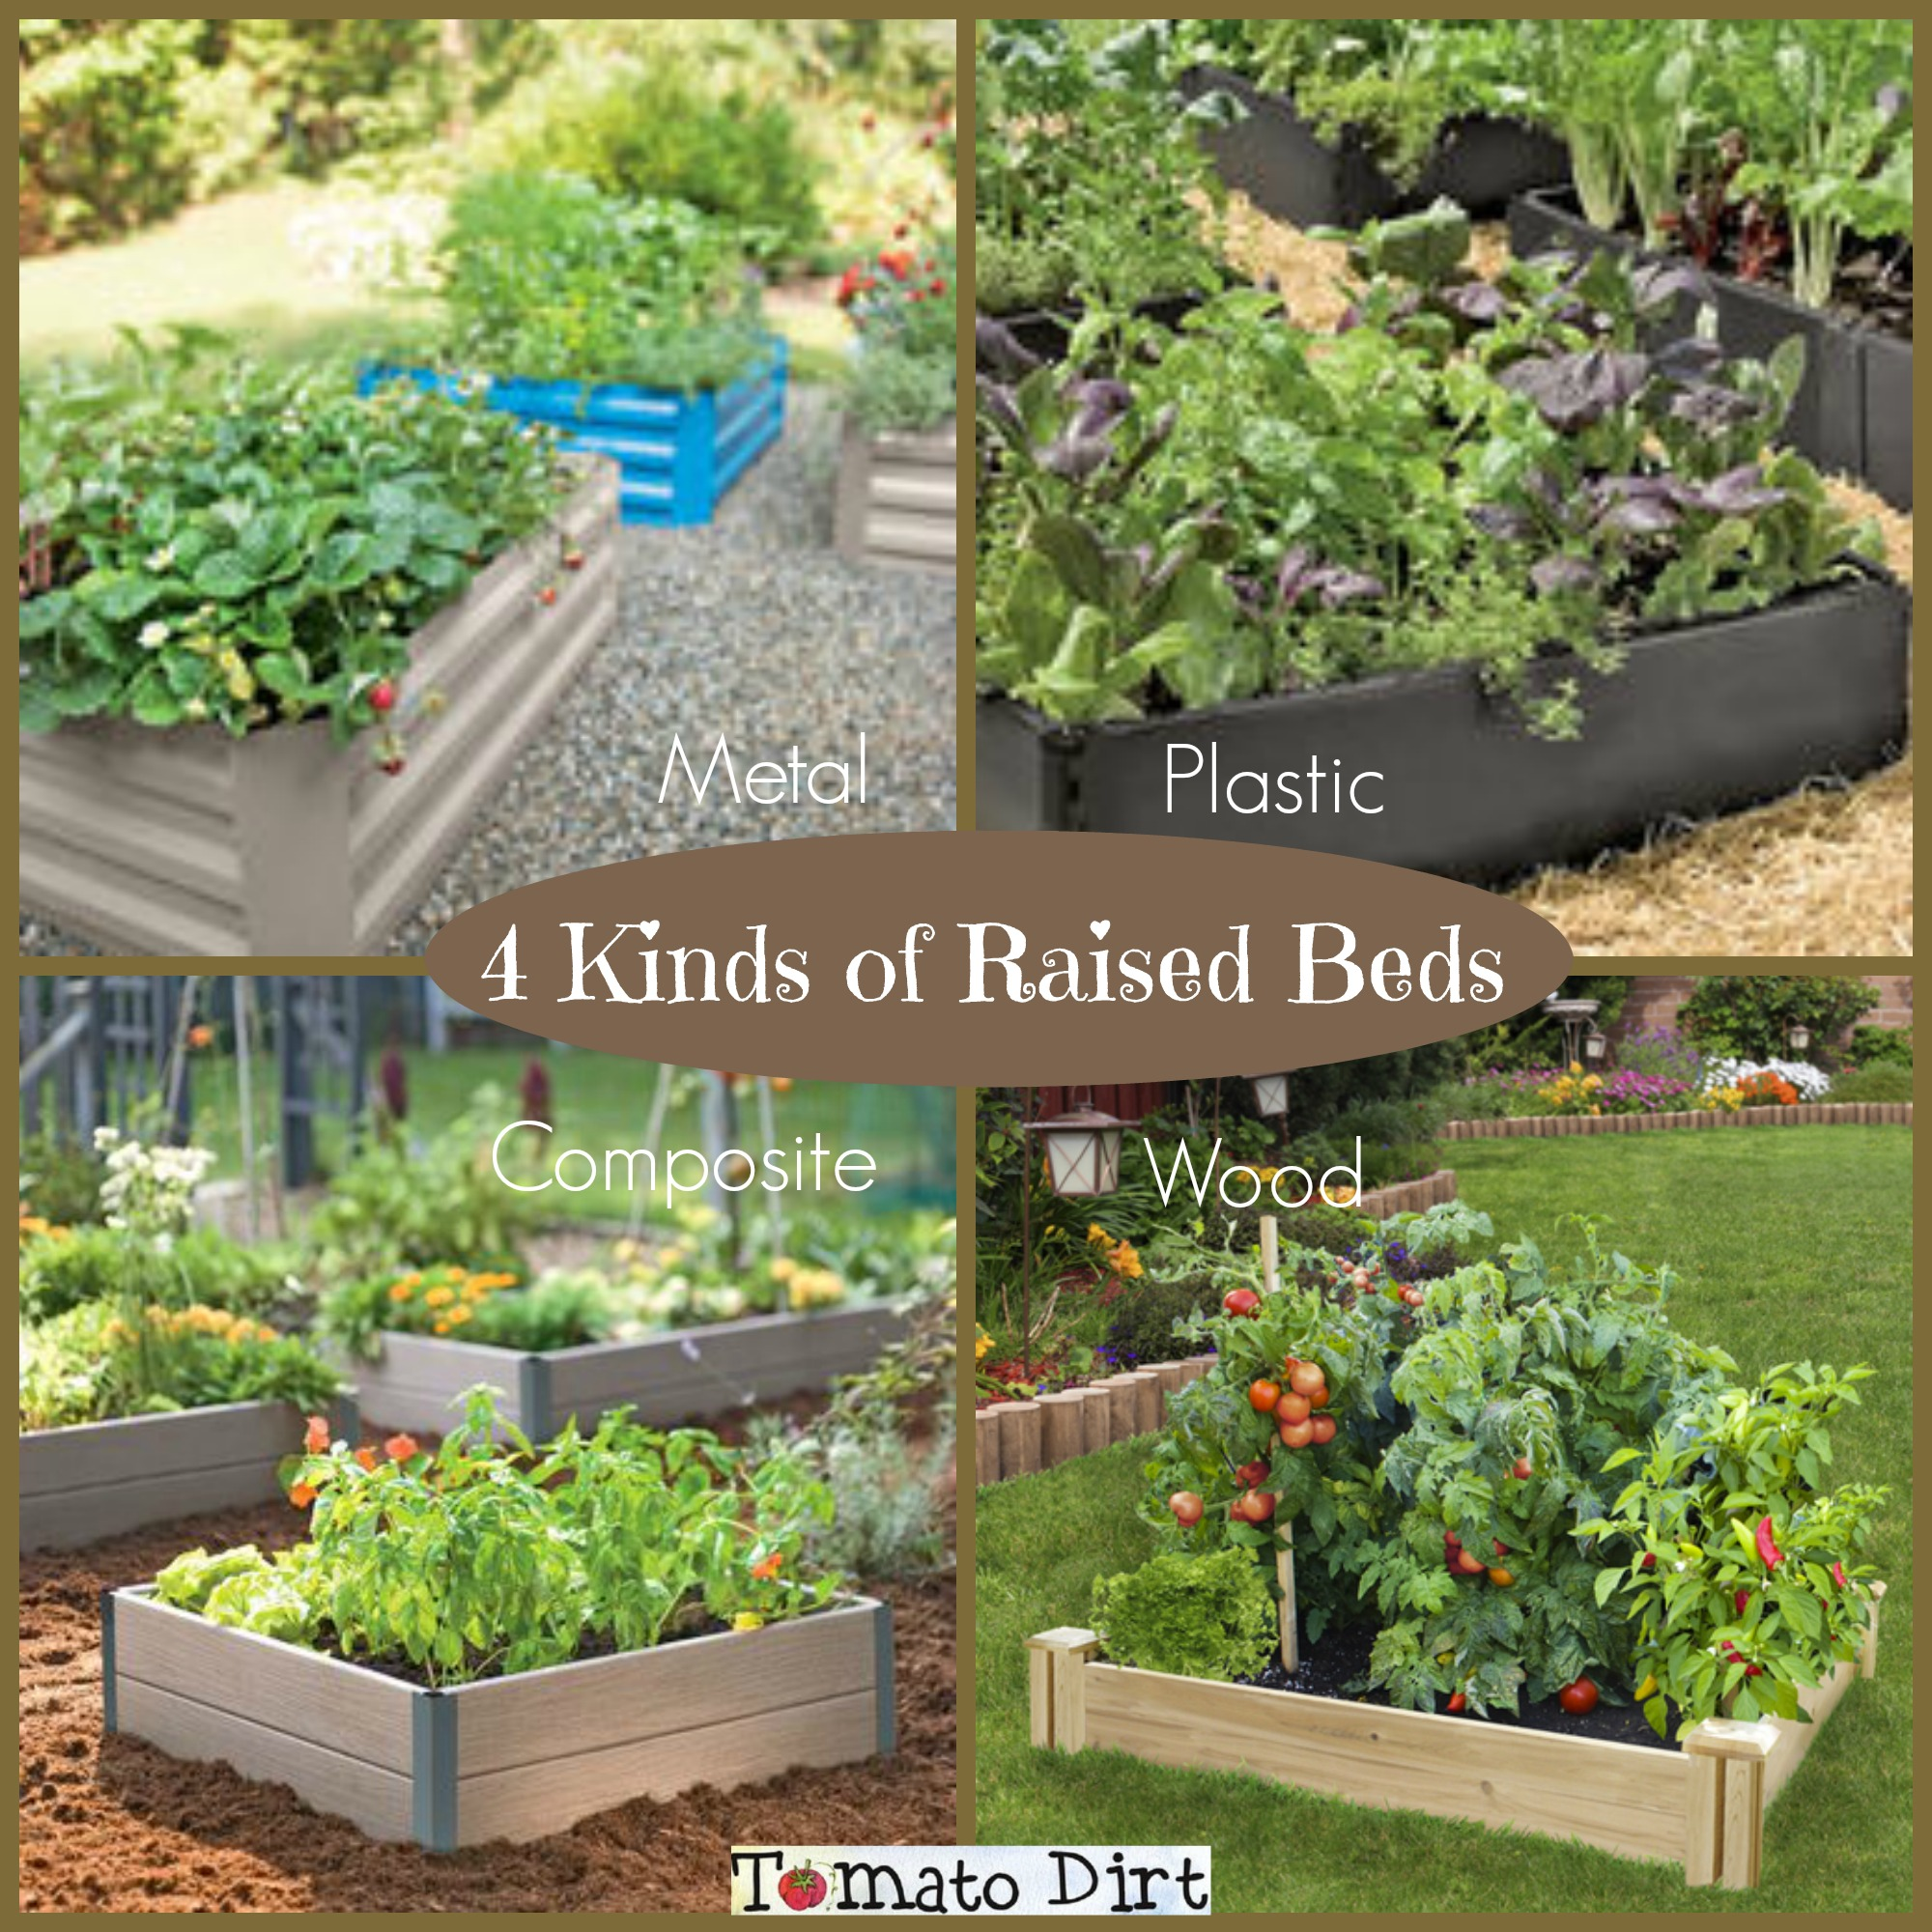 raised bed corrugated news steel uk made vegetable in farmer metal kit beds kits impressive city perth garden modular